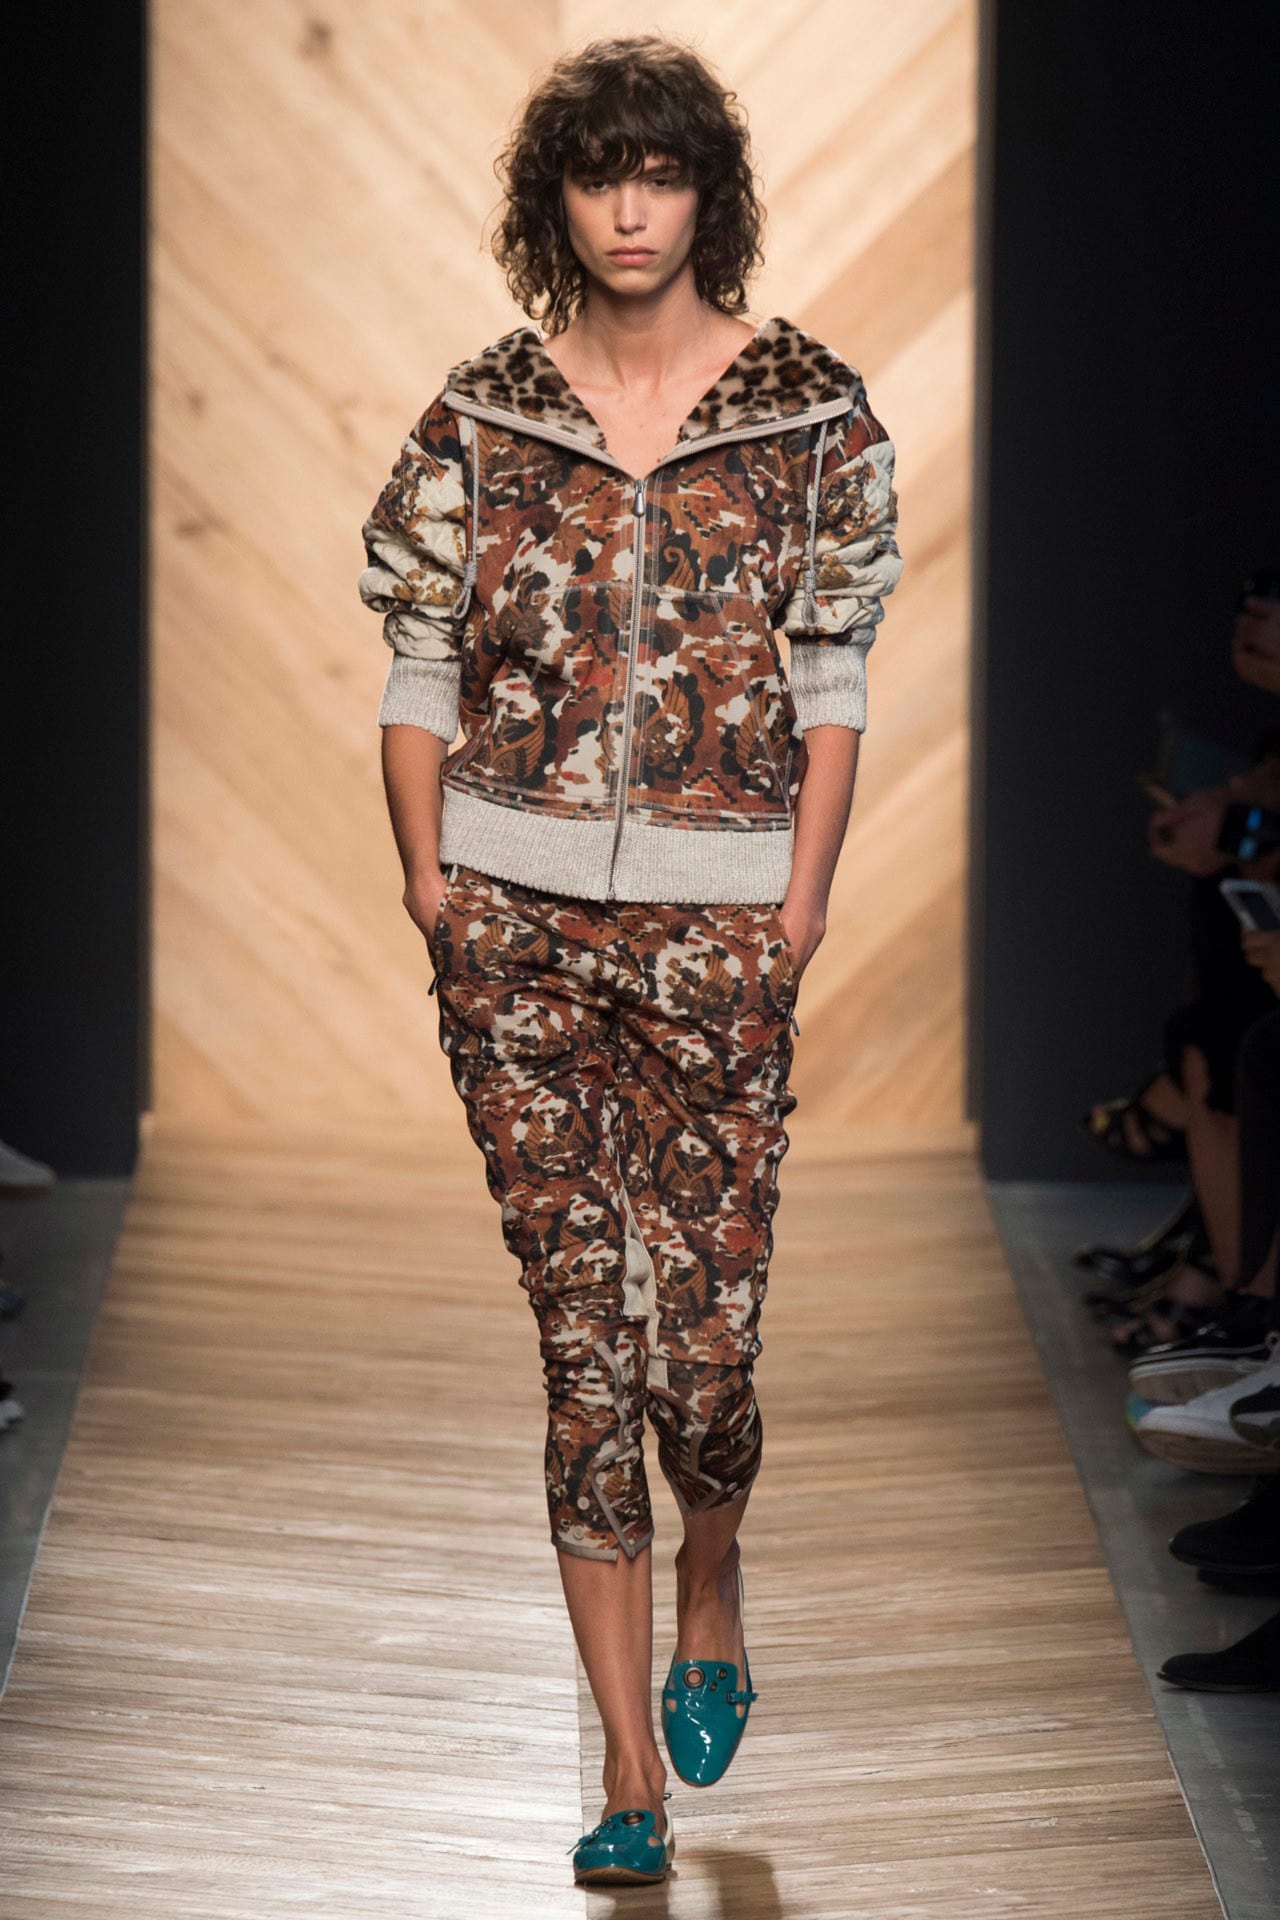 Bottega Veneta ready-to-wear spring/summer '16